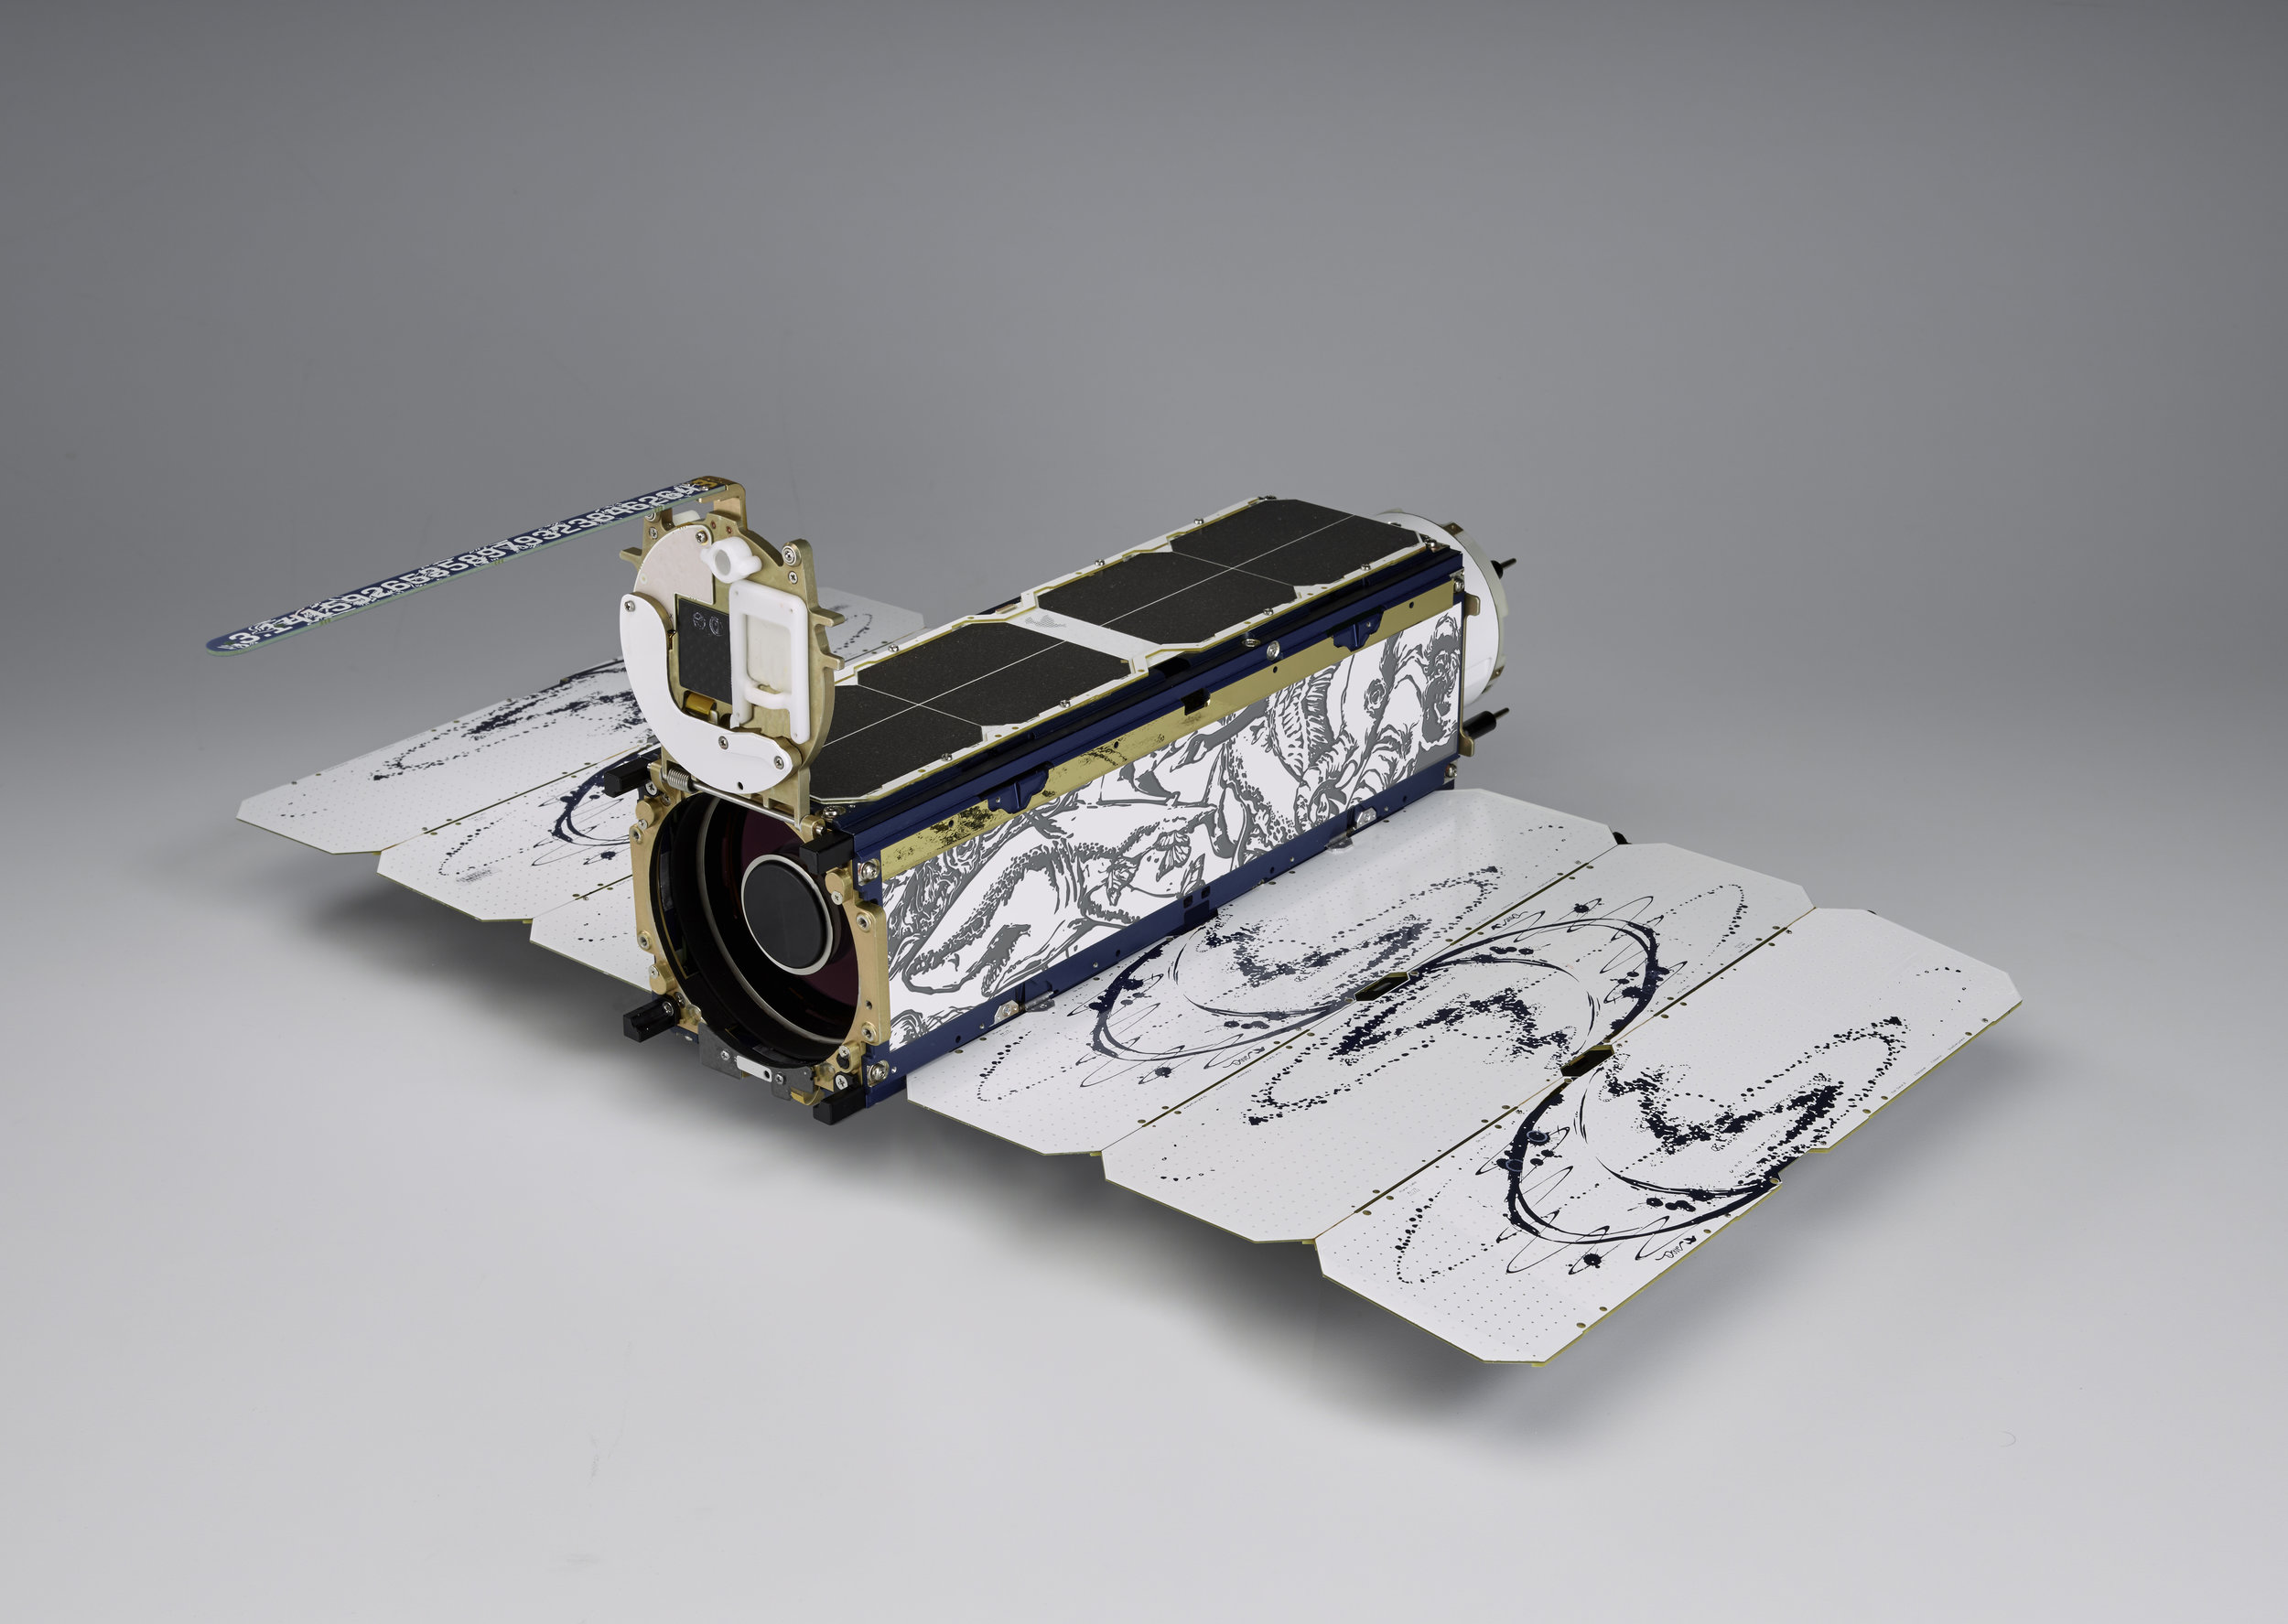 The Dove satellite can take roughly 10,000 images per day